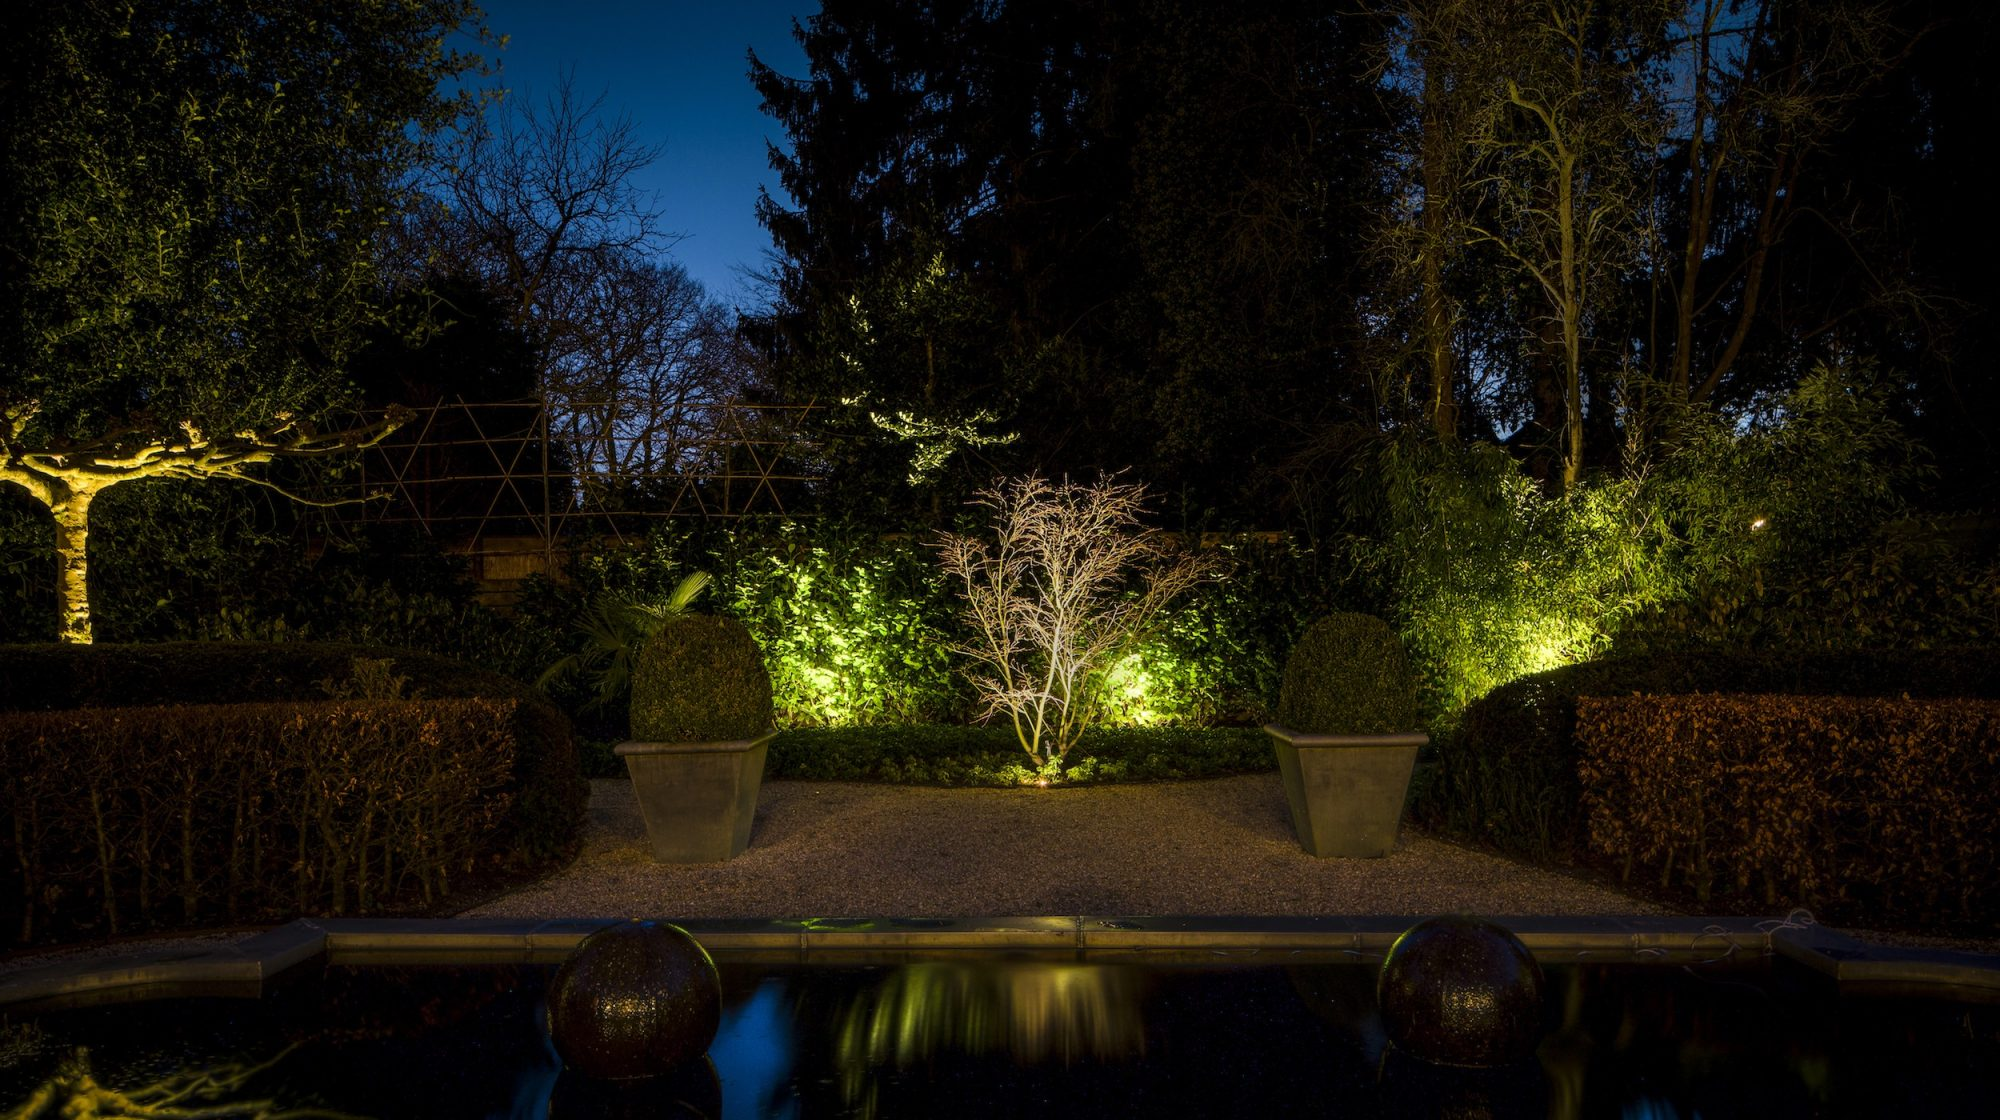 Rainforest Lighting - Grondspots buiten